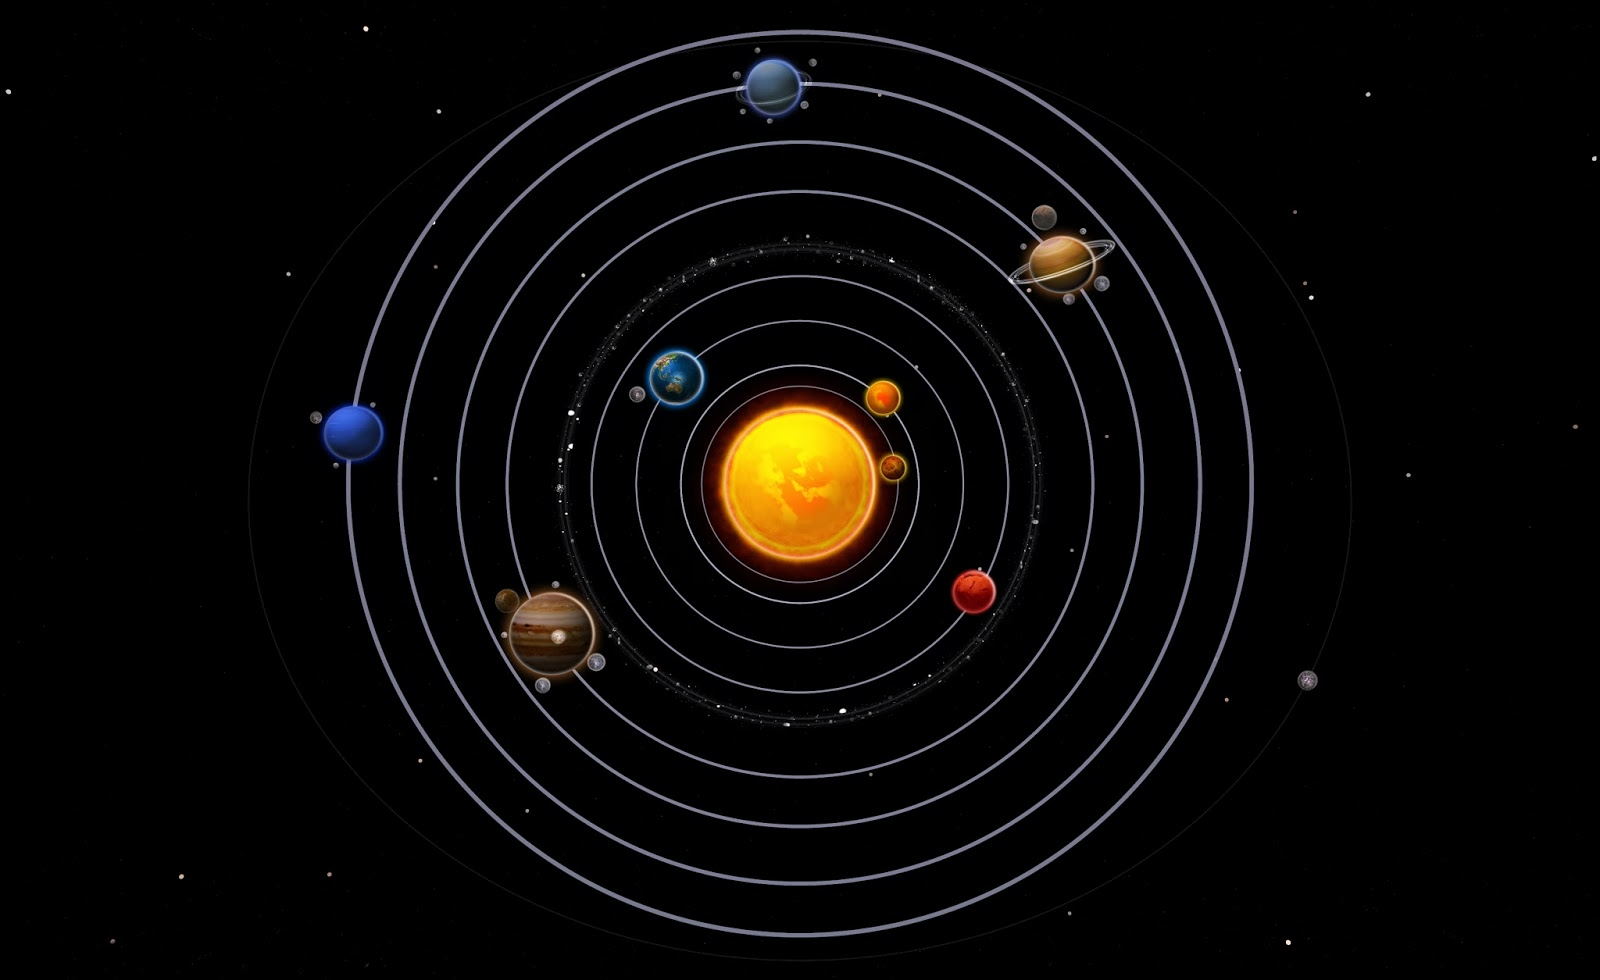 space planets without - photo #13